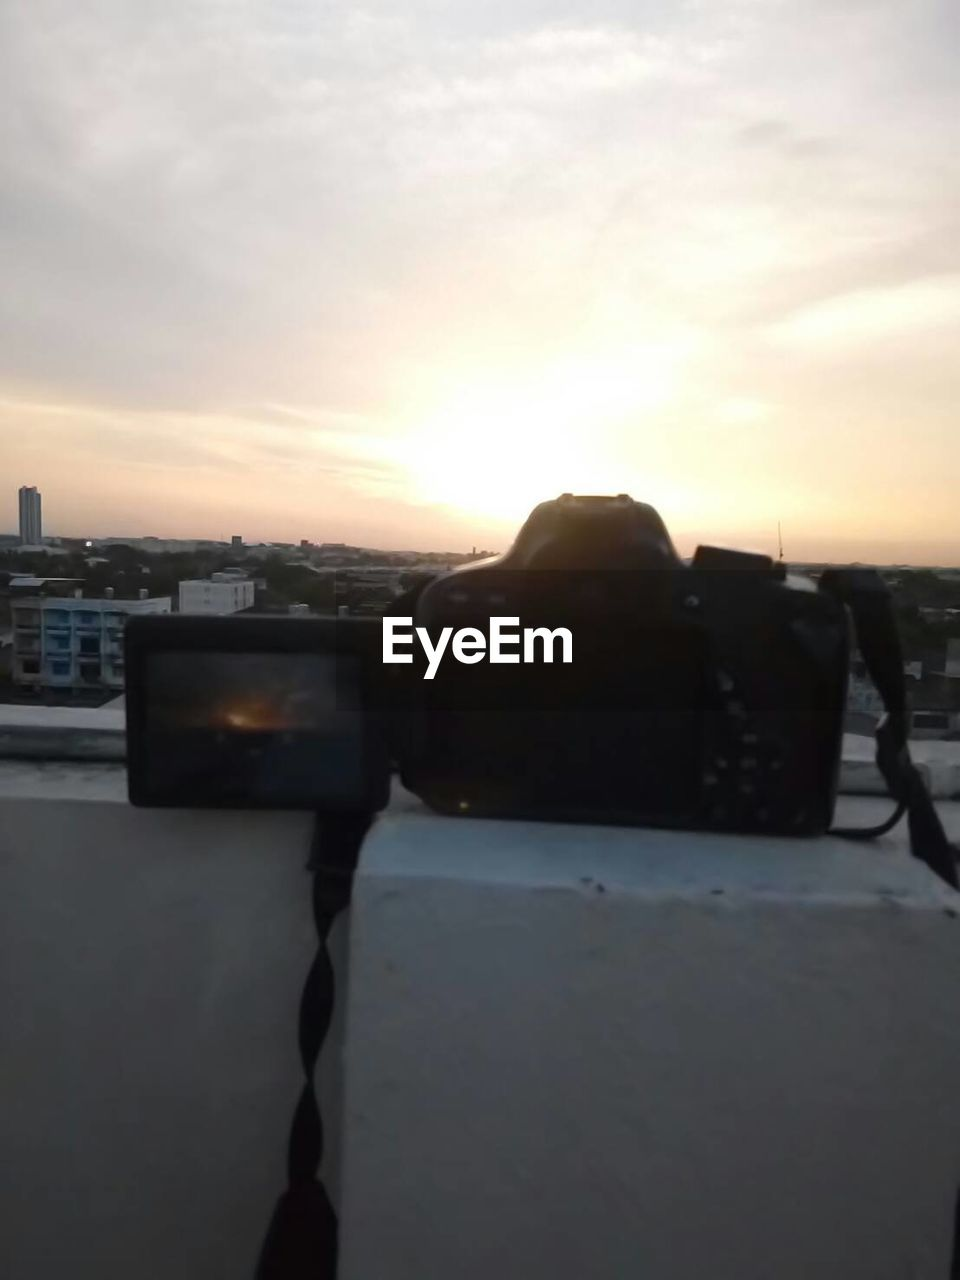 sunset, sky, technology, photography themes, photographing, camera - photographic equipment, cloud - sky, architecture, outdoors, close-up, built structure, building exterior, wireless technology, city, nature, no people, cityscape, digital single-lens reflex camera, day